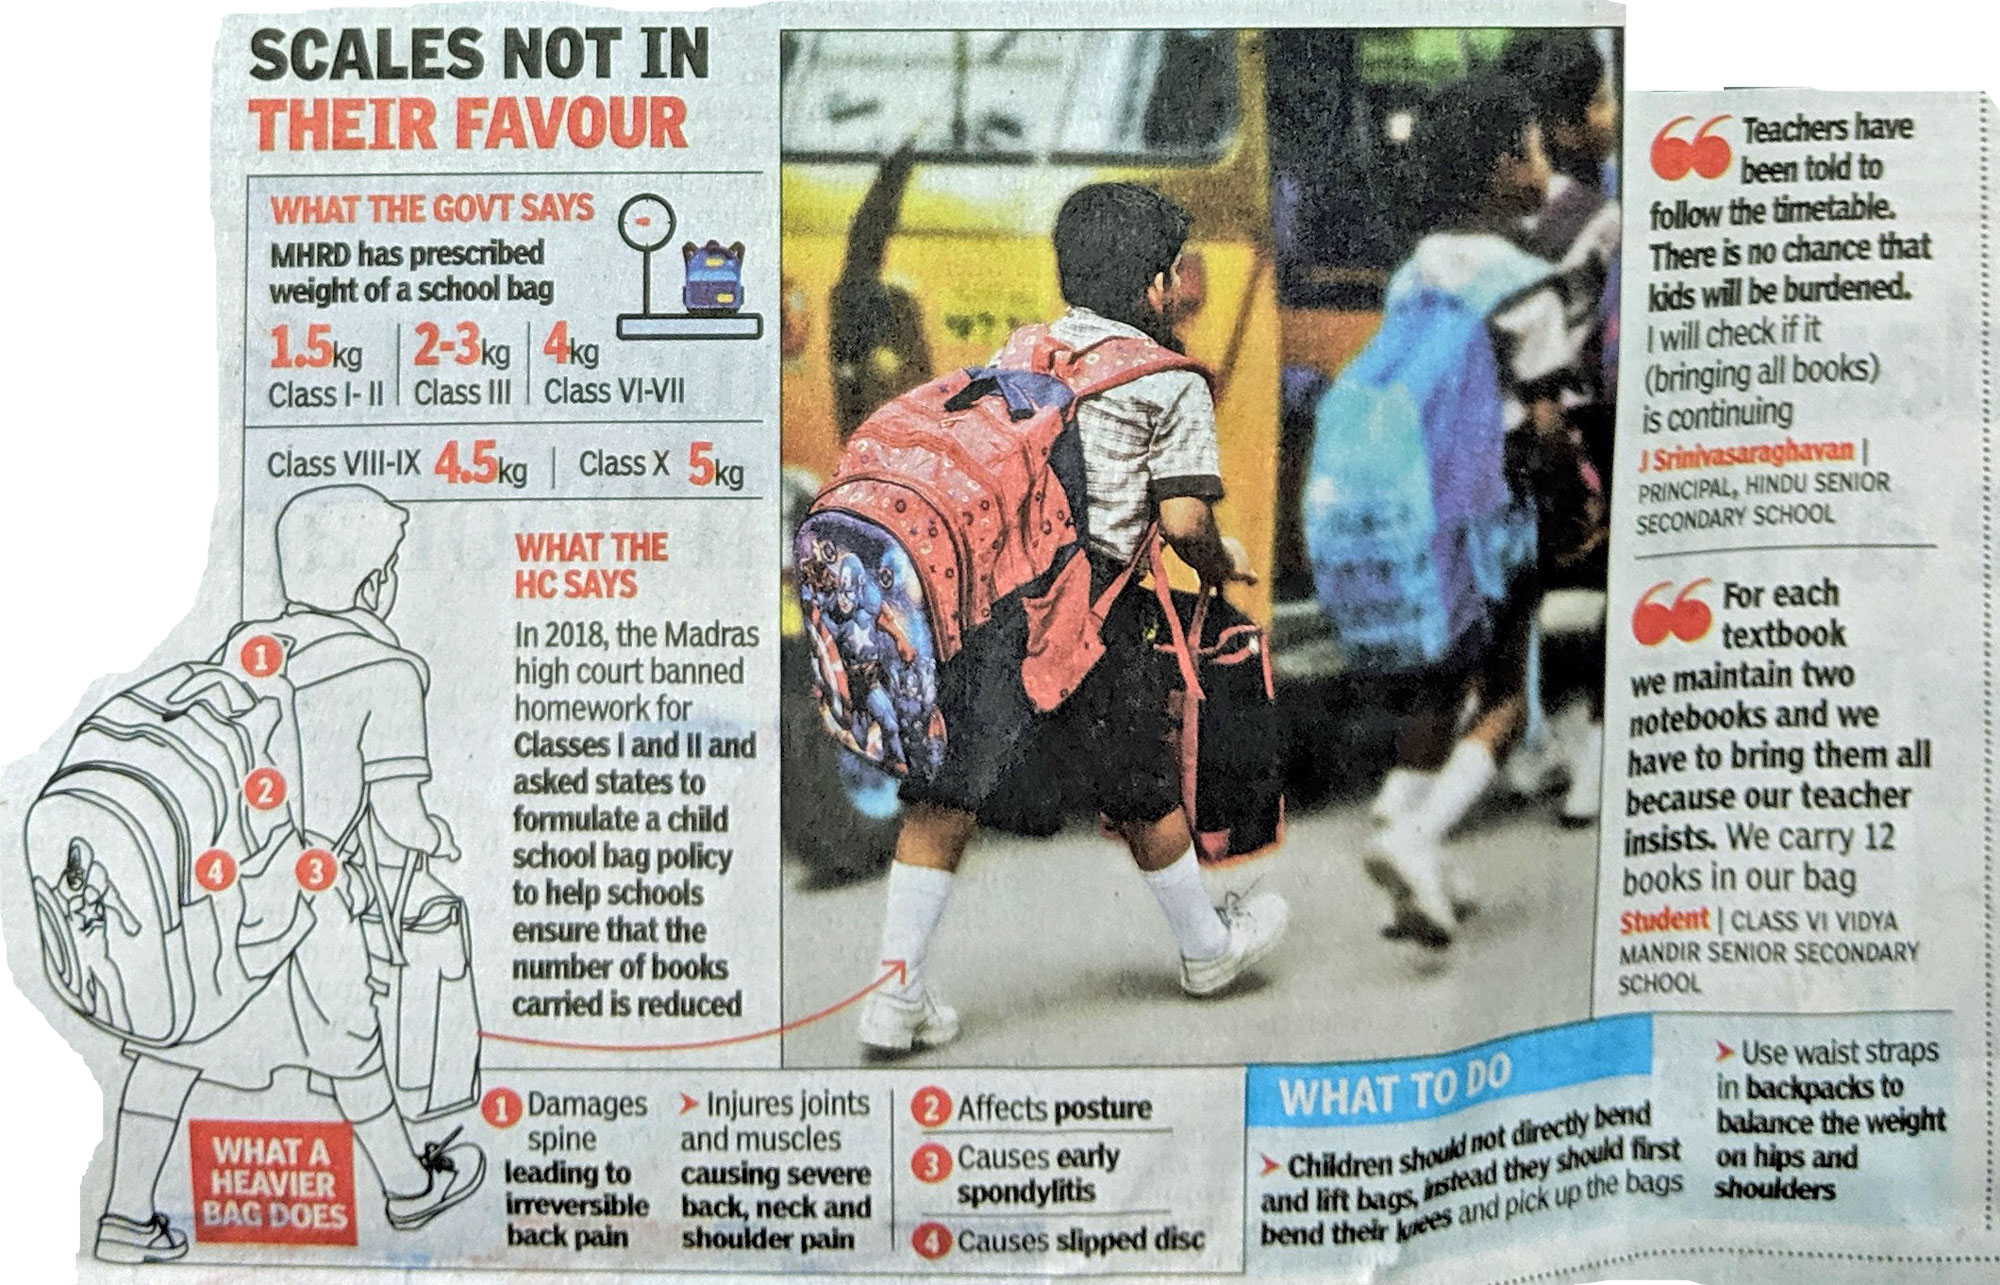 What a heavier bag does - Scales not in their favour - Times of India, Chennai